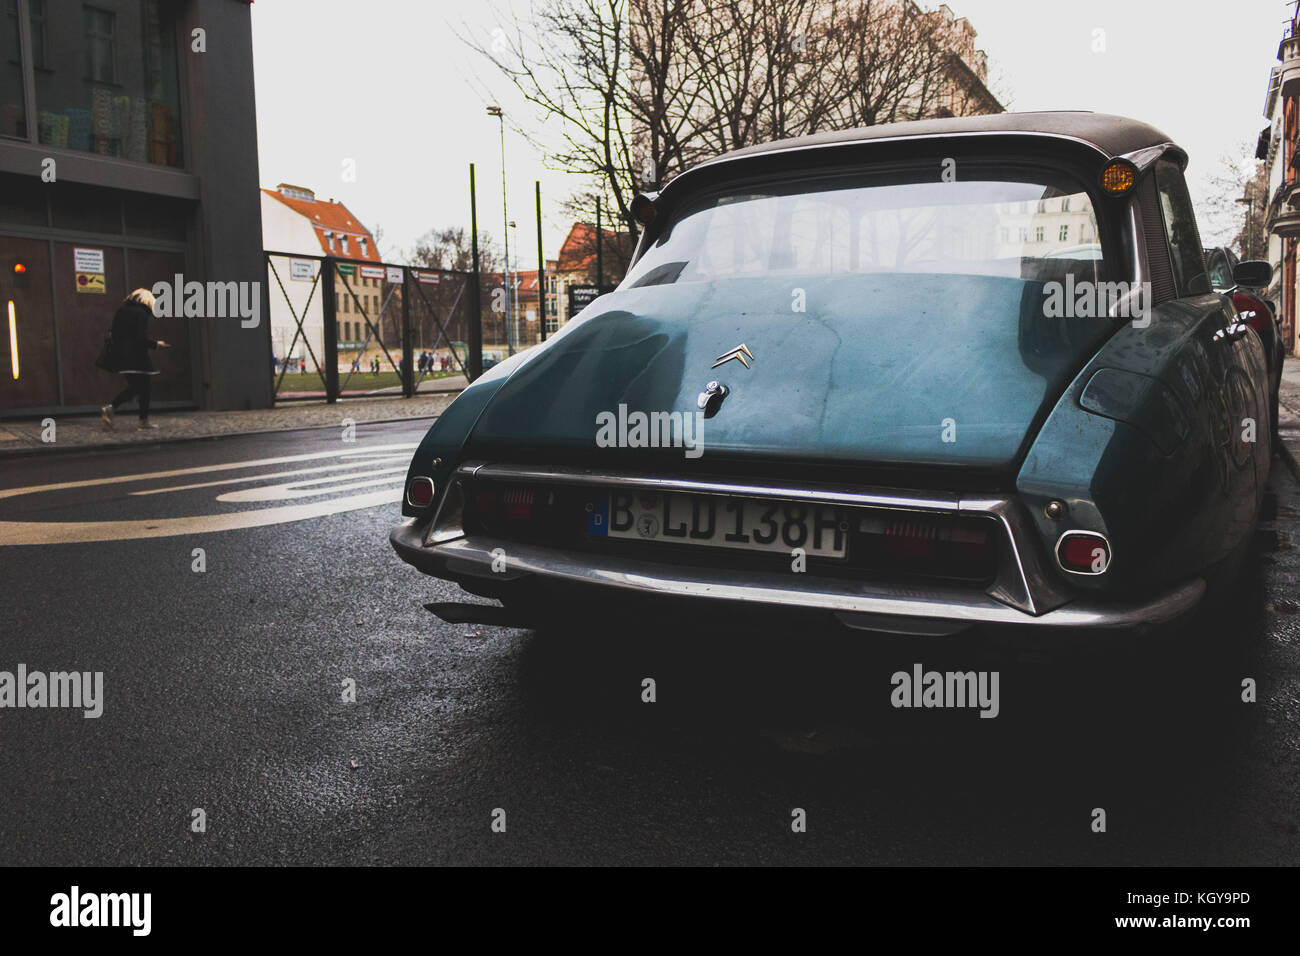 Old School Car Stock Photos & Old School Car Stock Images - Alamy